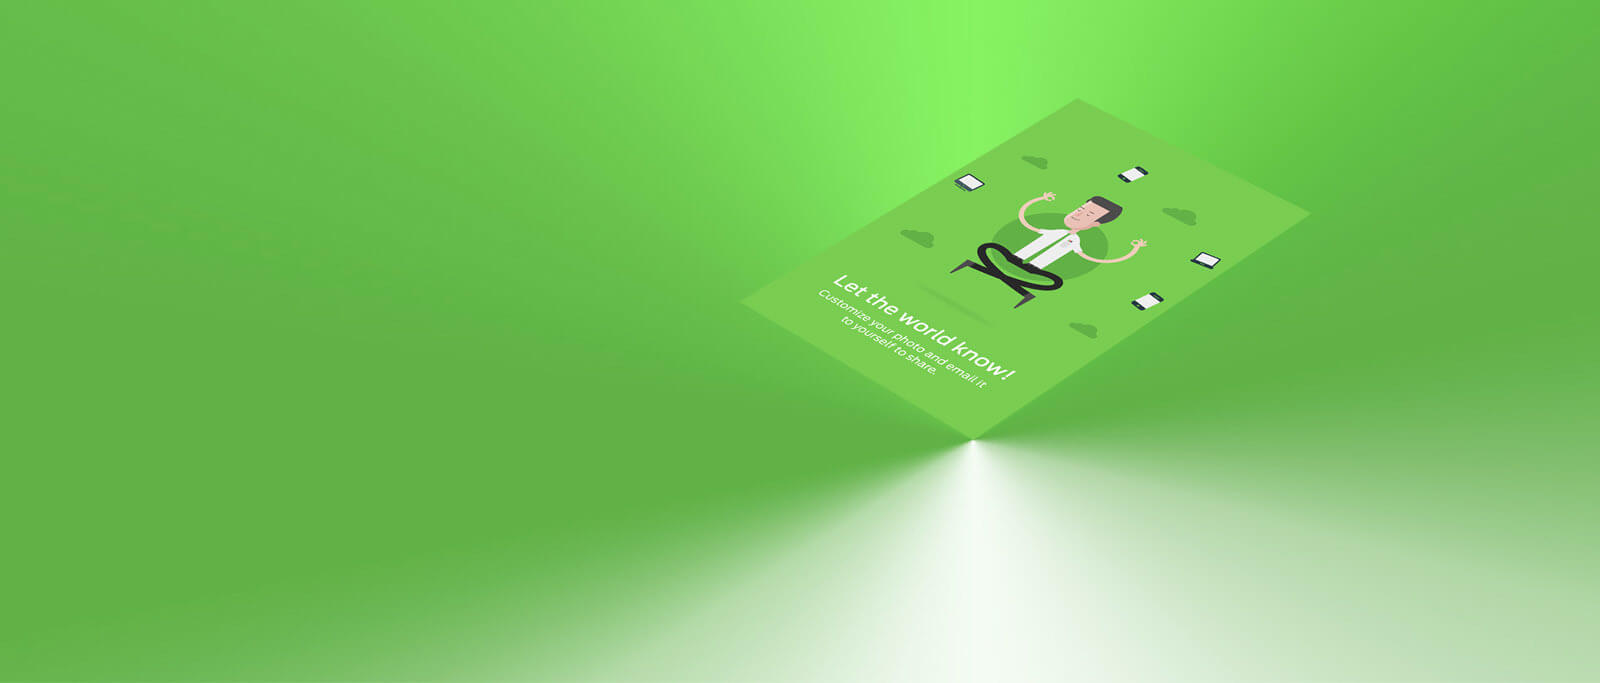 Duo case study image on floating card